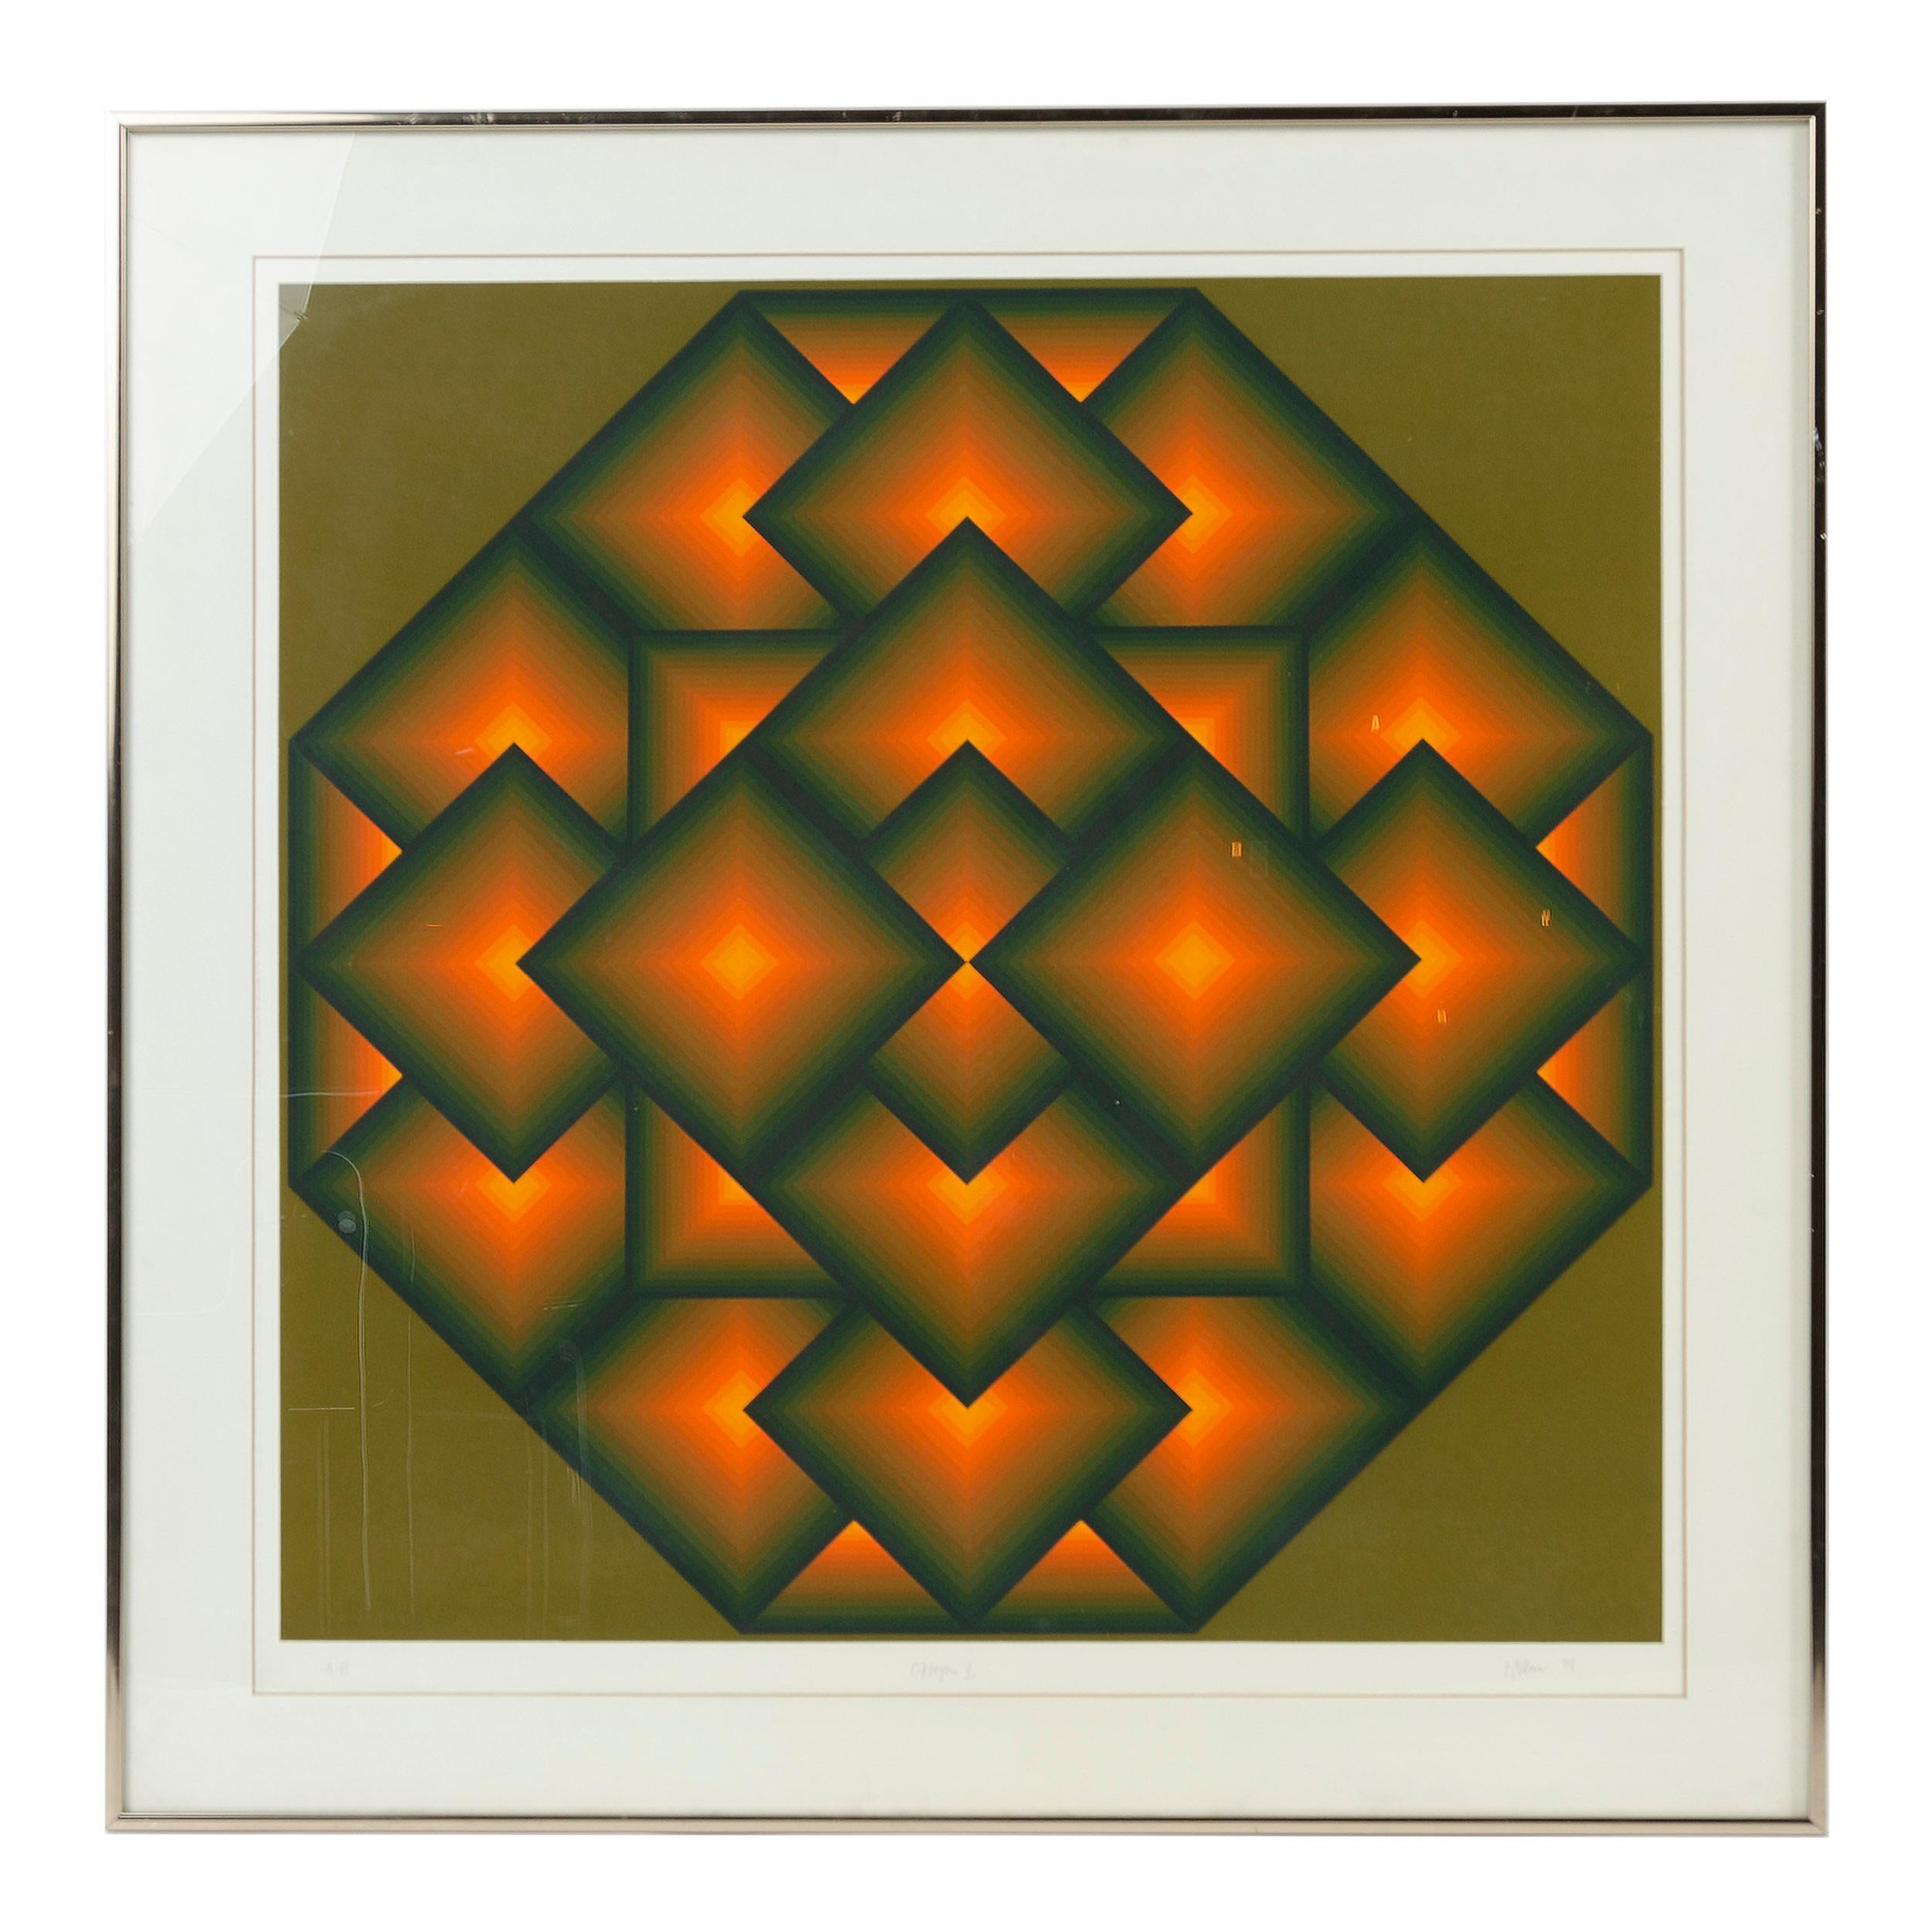 Framed 'Octagon V' Serigraph by Jurgen Peters